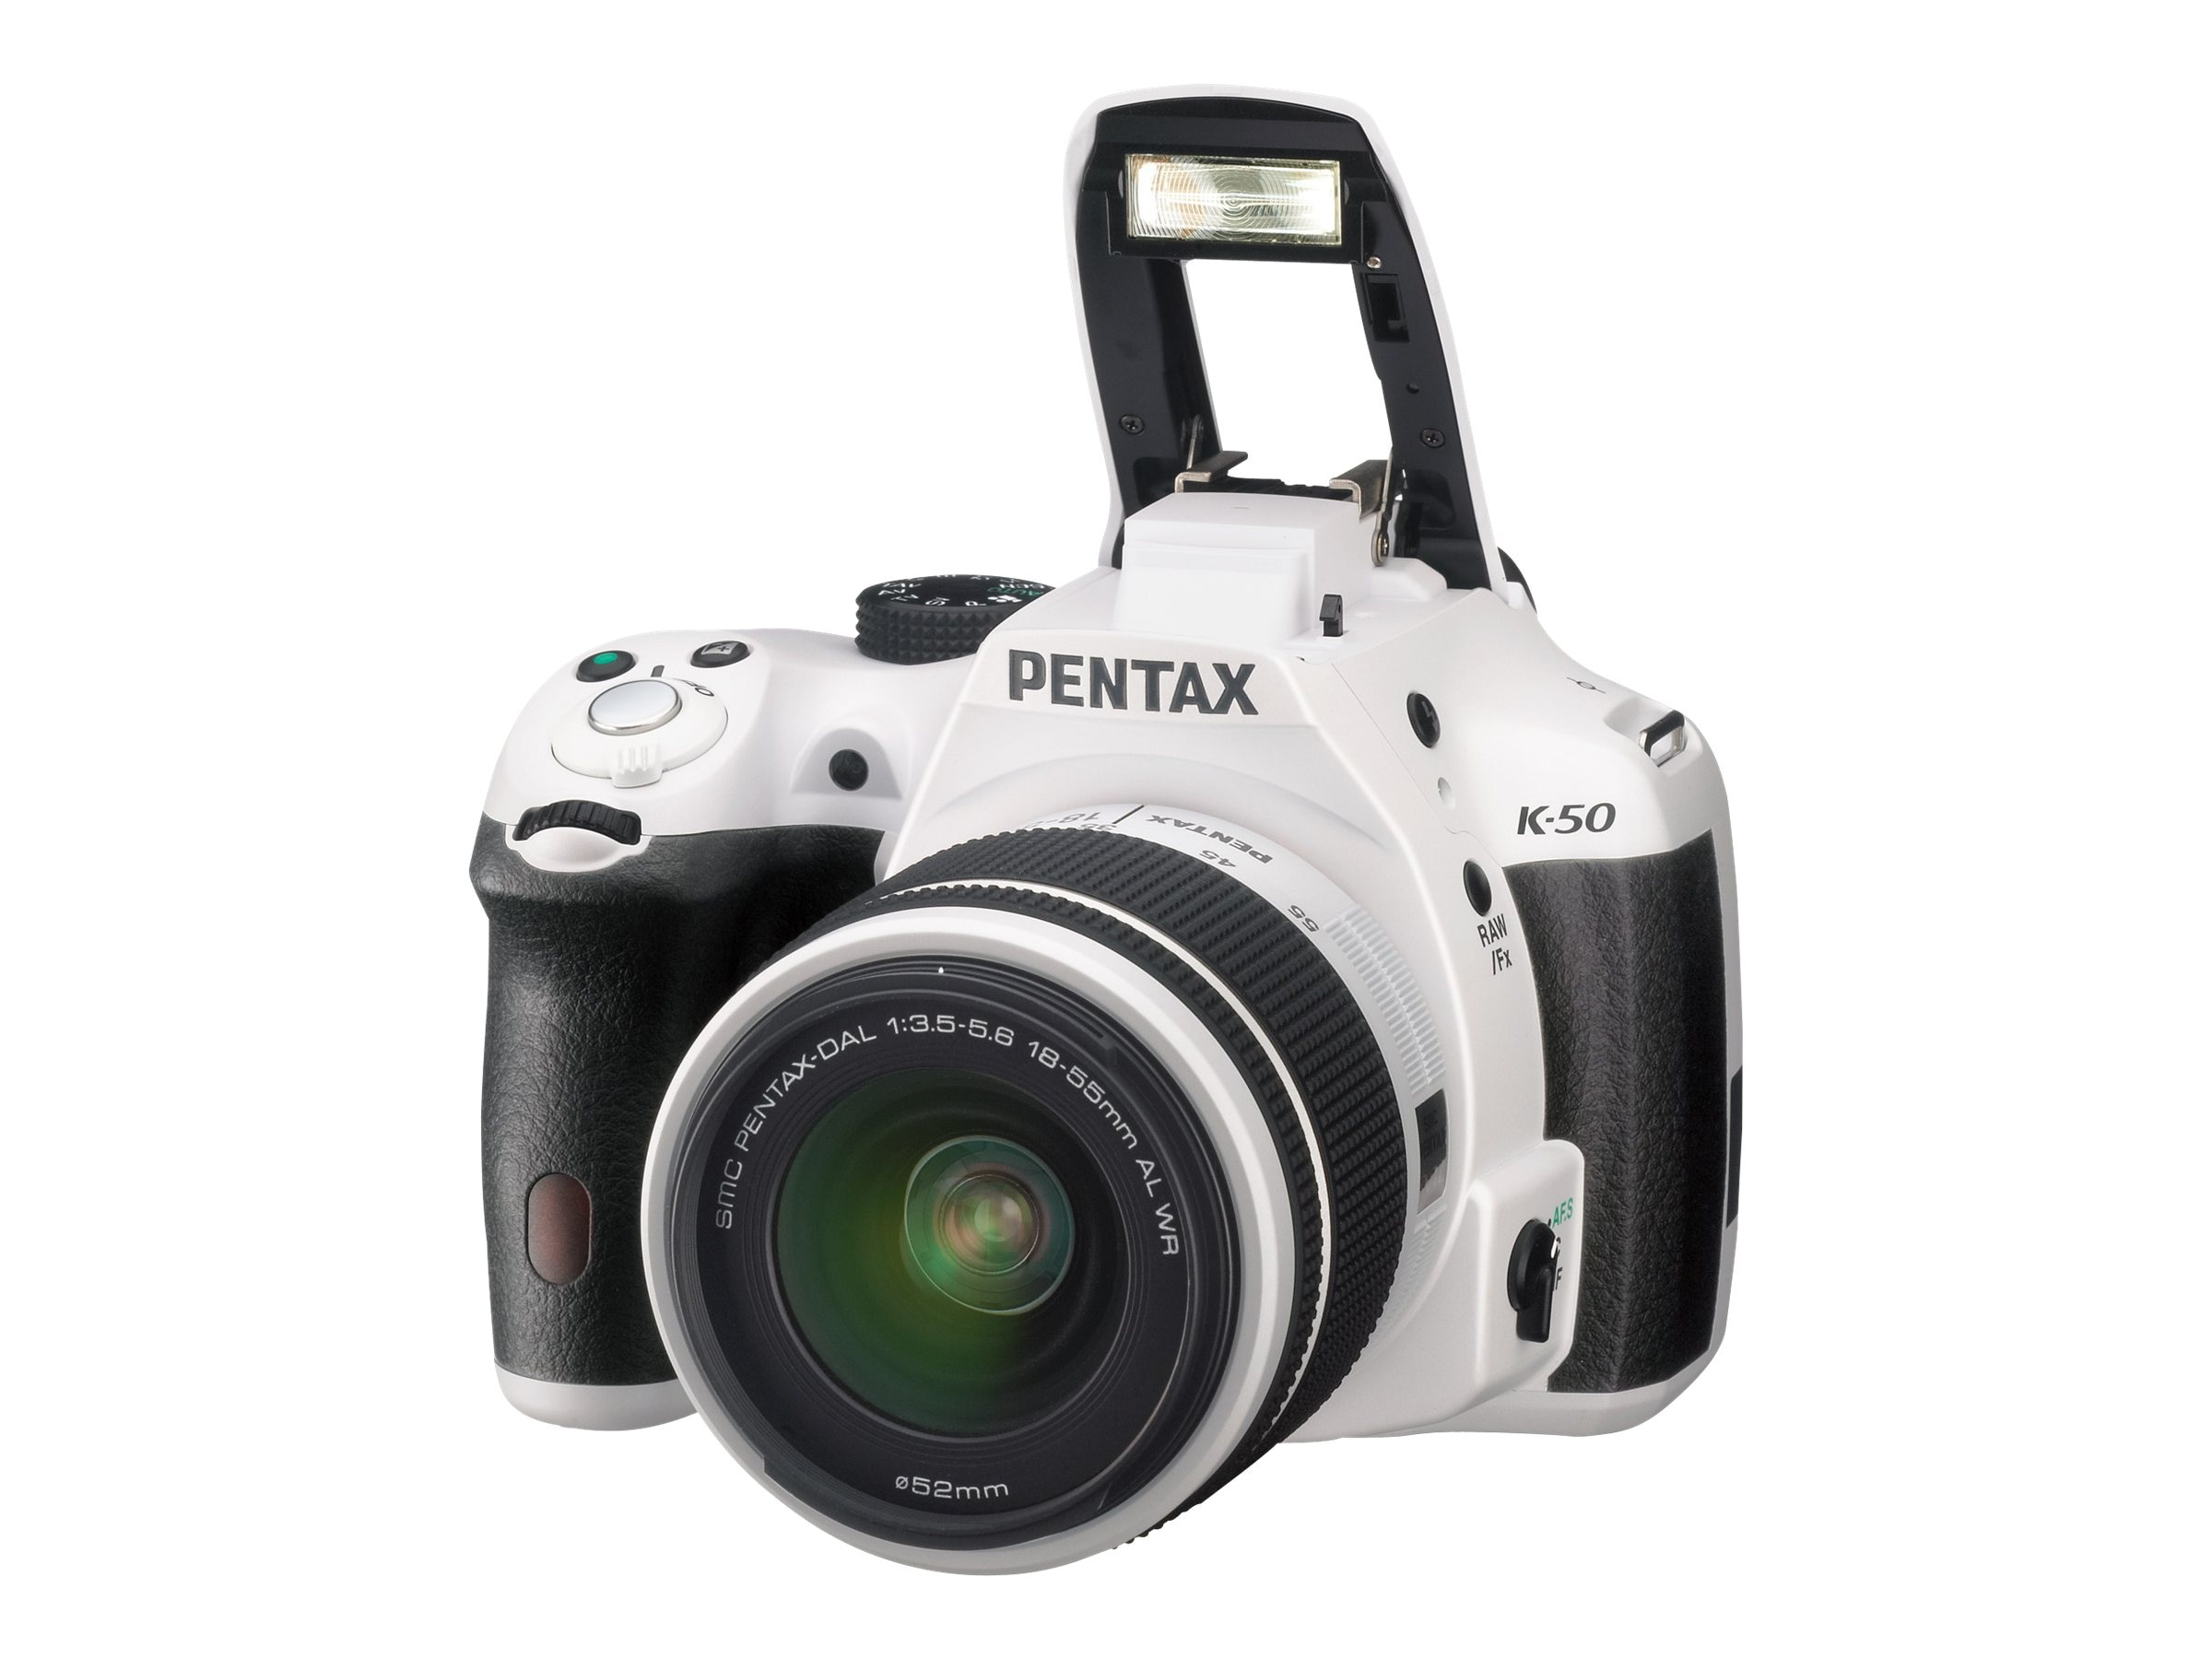 Pentax K-50 Digital SLR Camera, White (Body Only), 10928, 15953293, Cameras - Digital - SLR